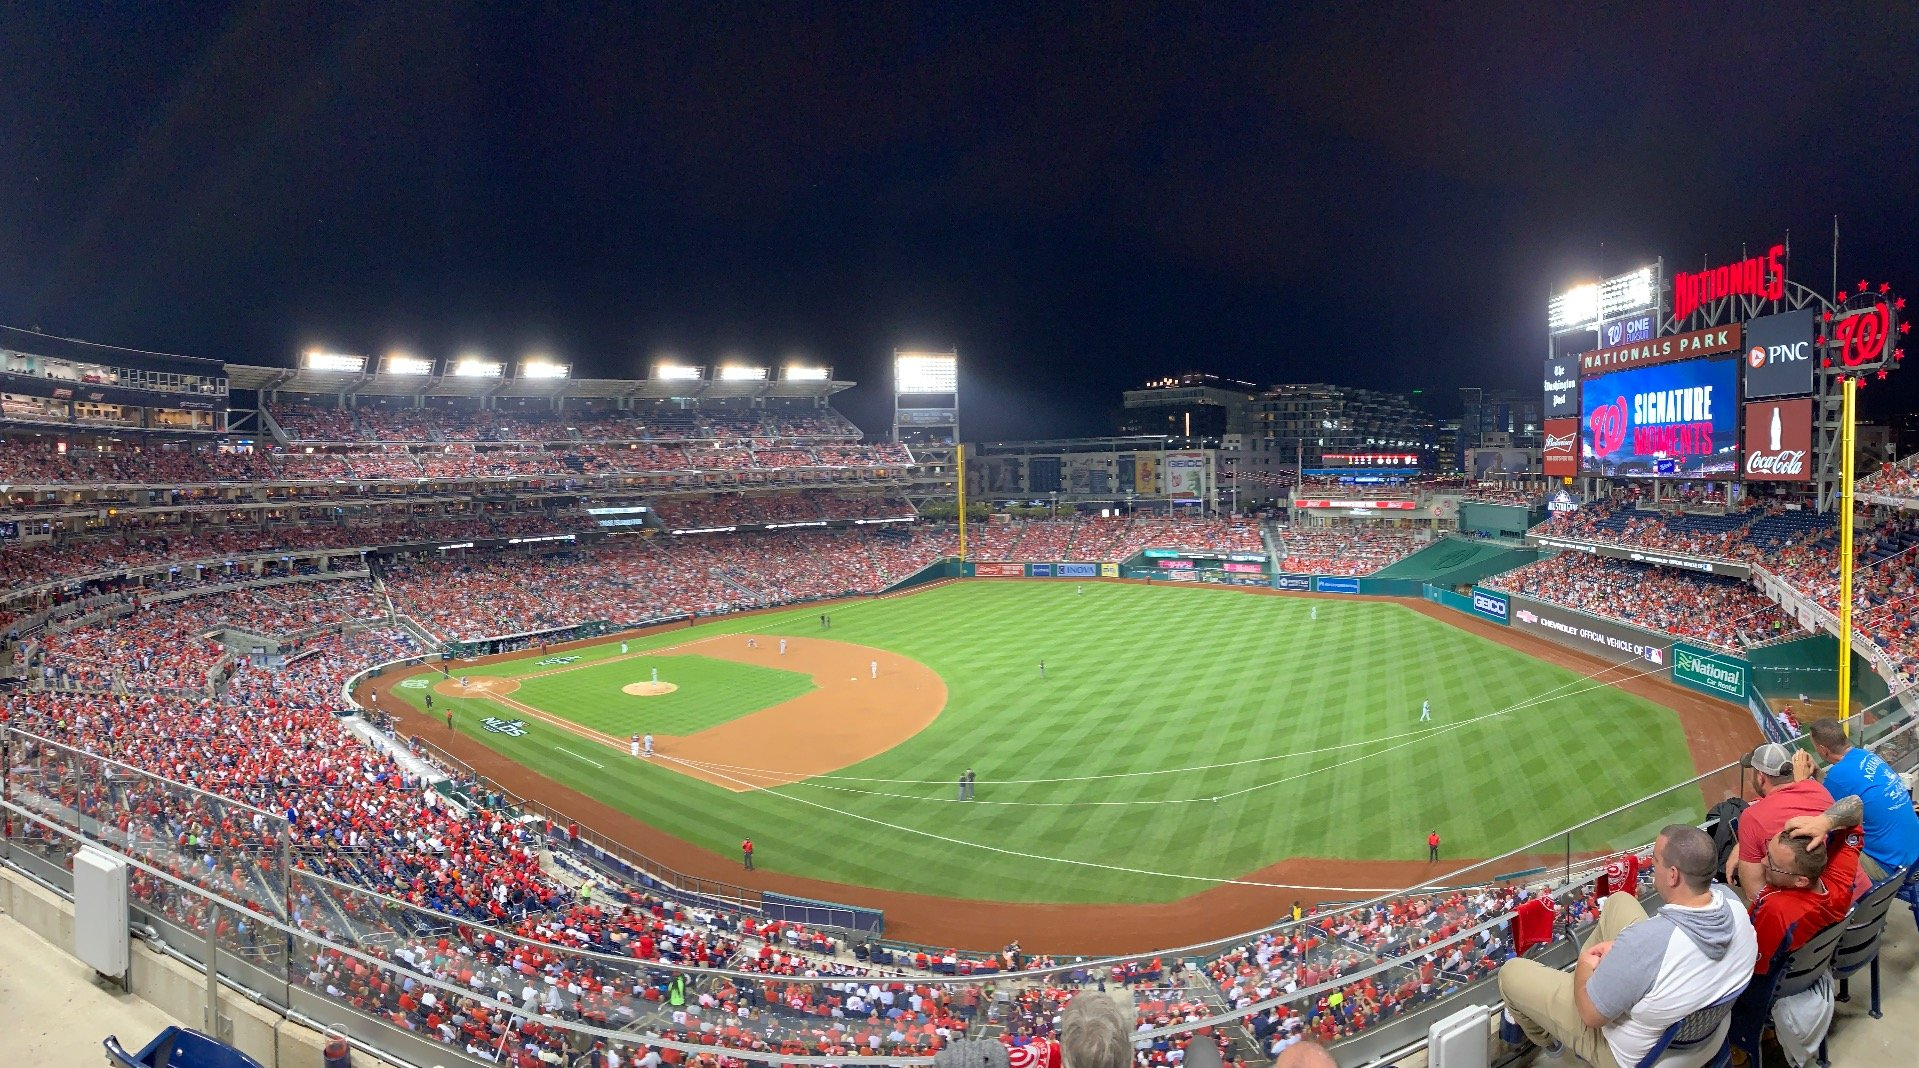 Nationals Park Section 224 Row D Seat 11